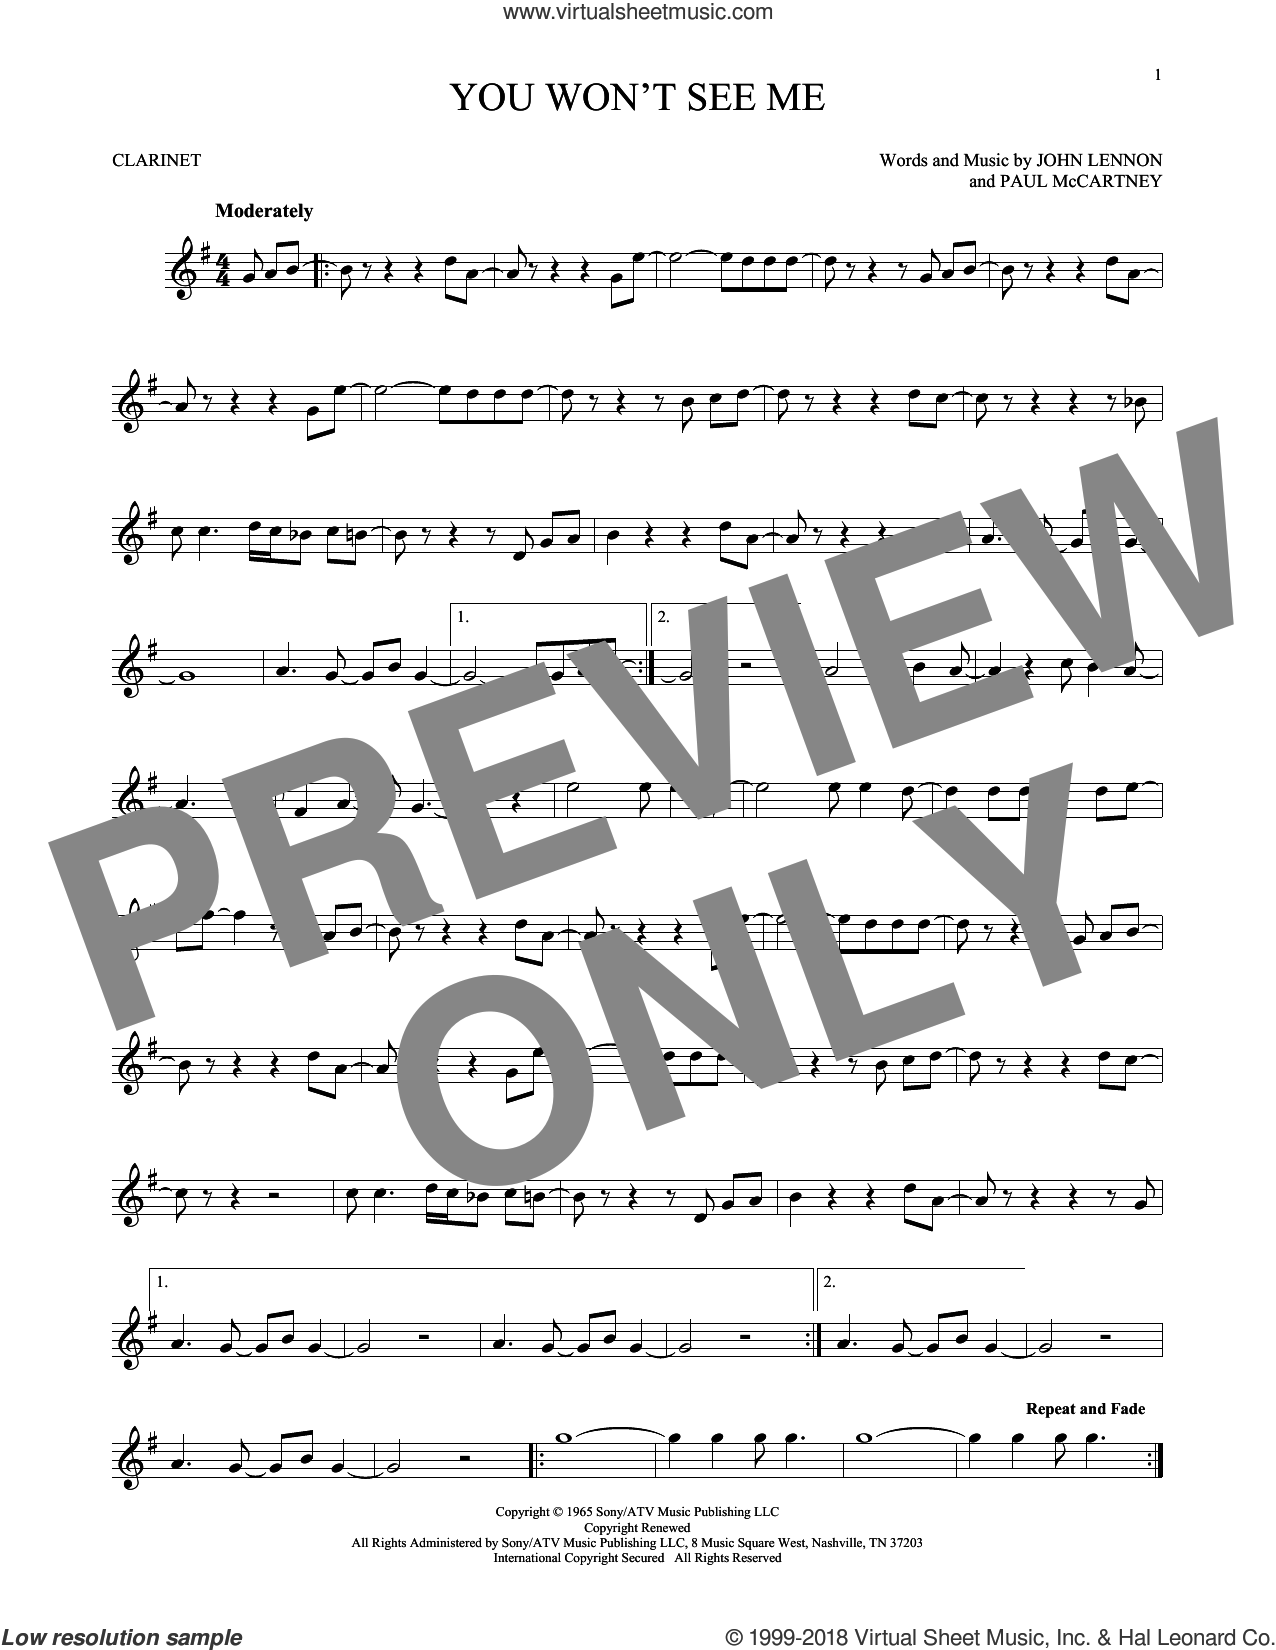 You Won't See Me sheet music for clarinet solo by Paul McCartney, The Beatles and John Lennon. Score Image Preview.